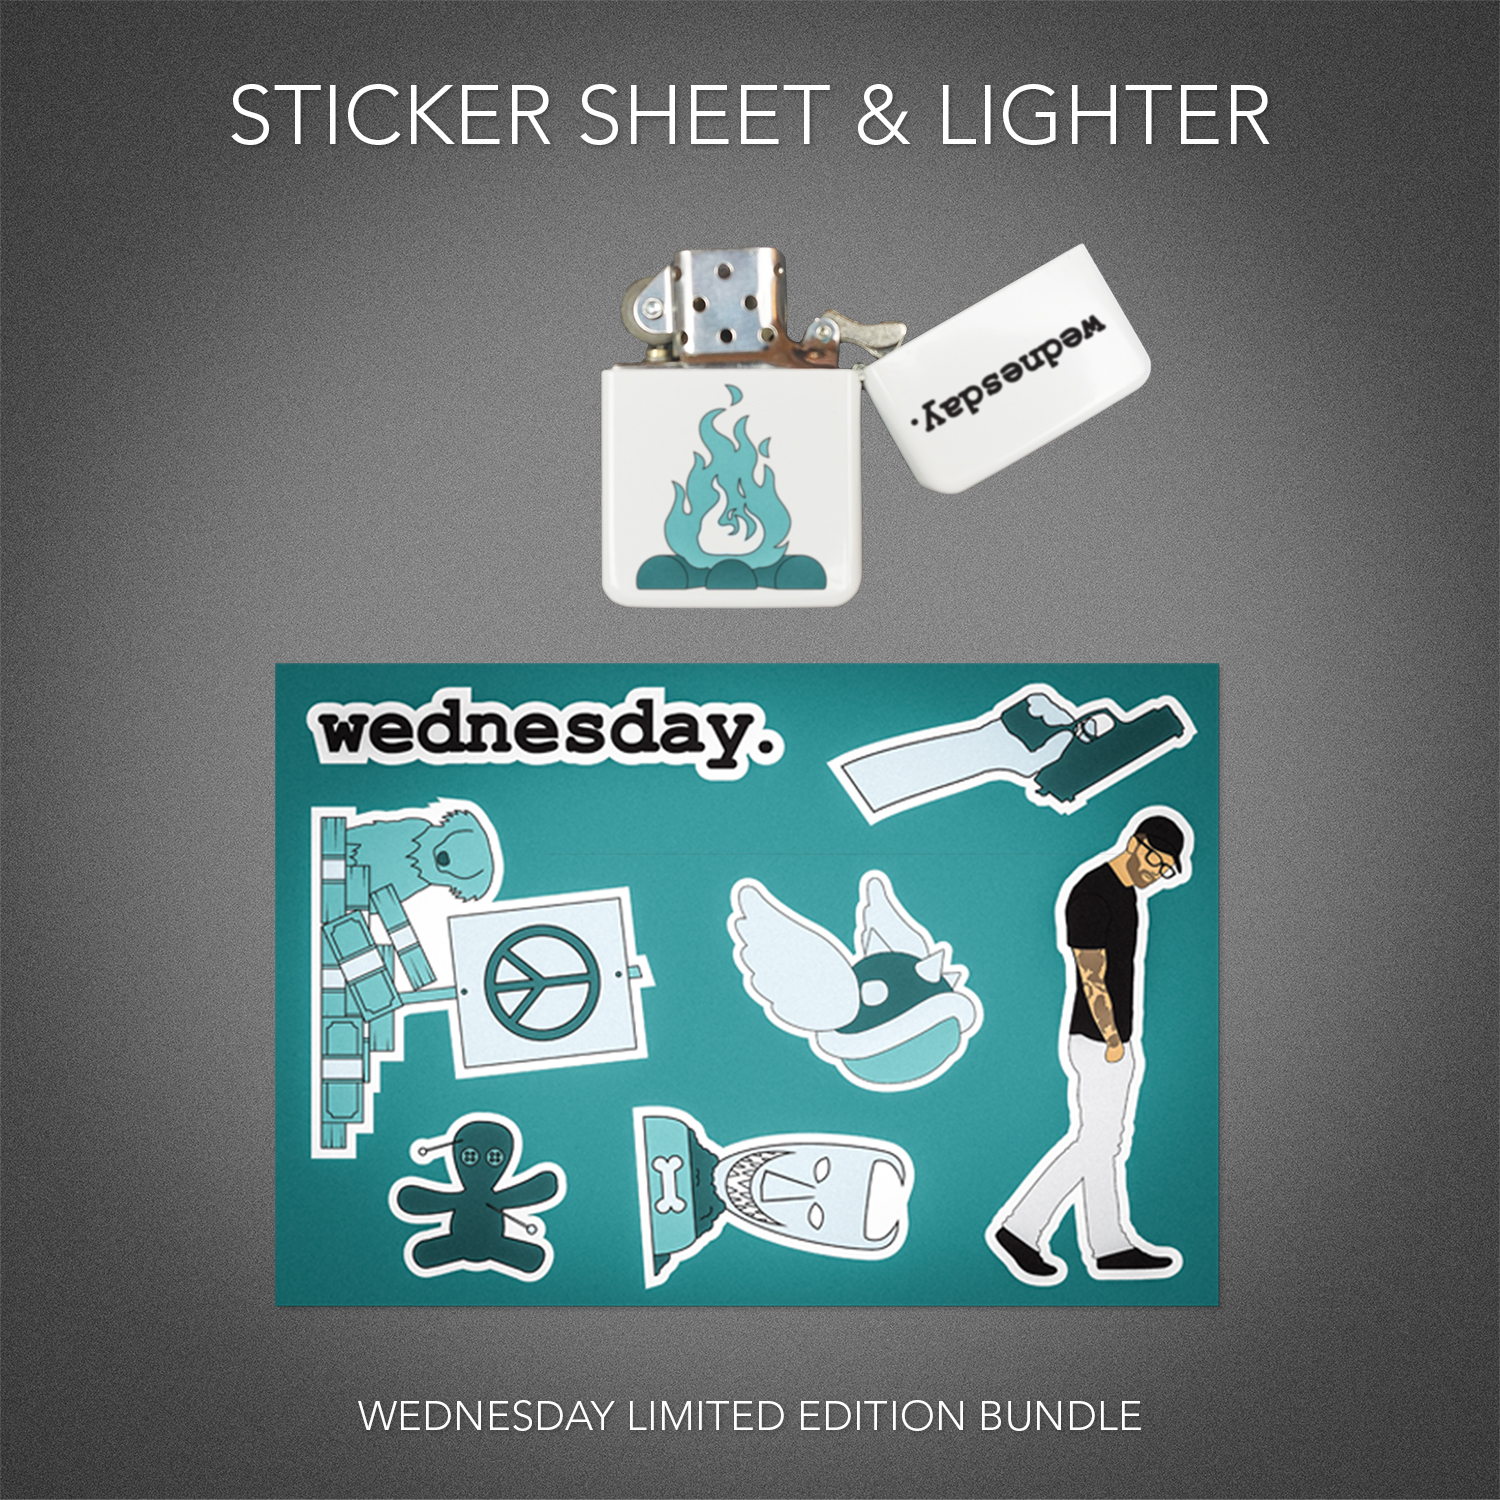 Wednesday Lighter & Sticker Sheet